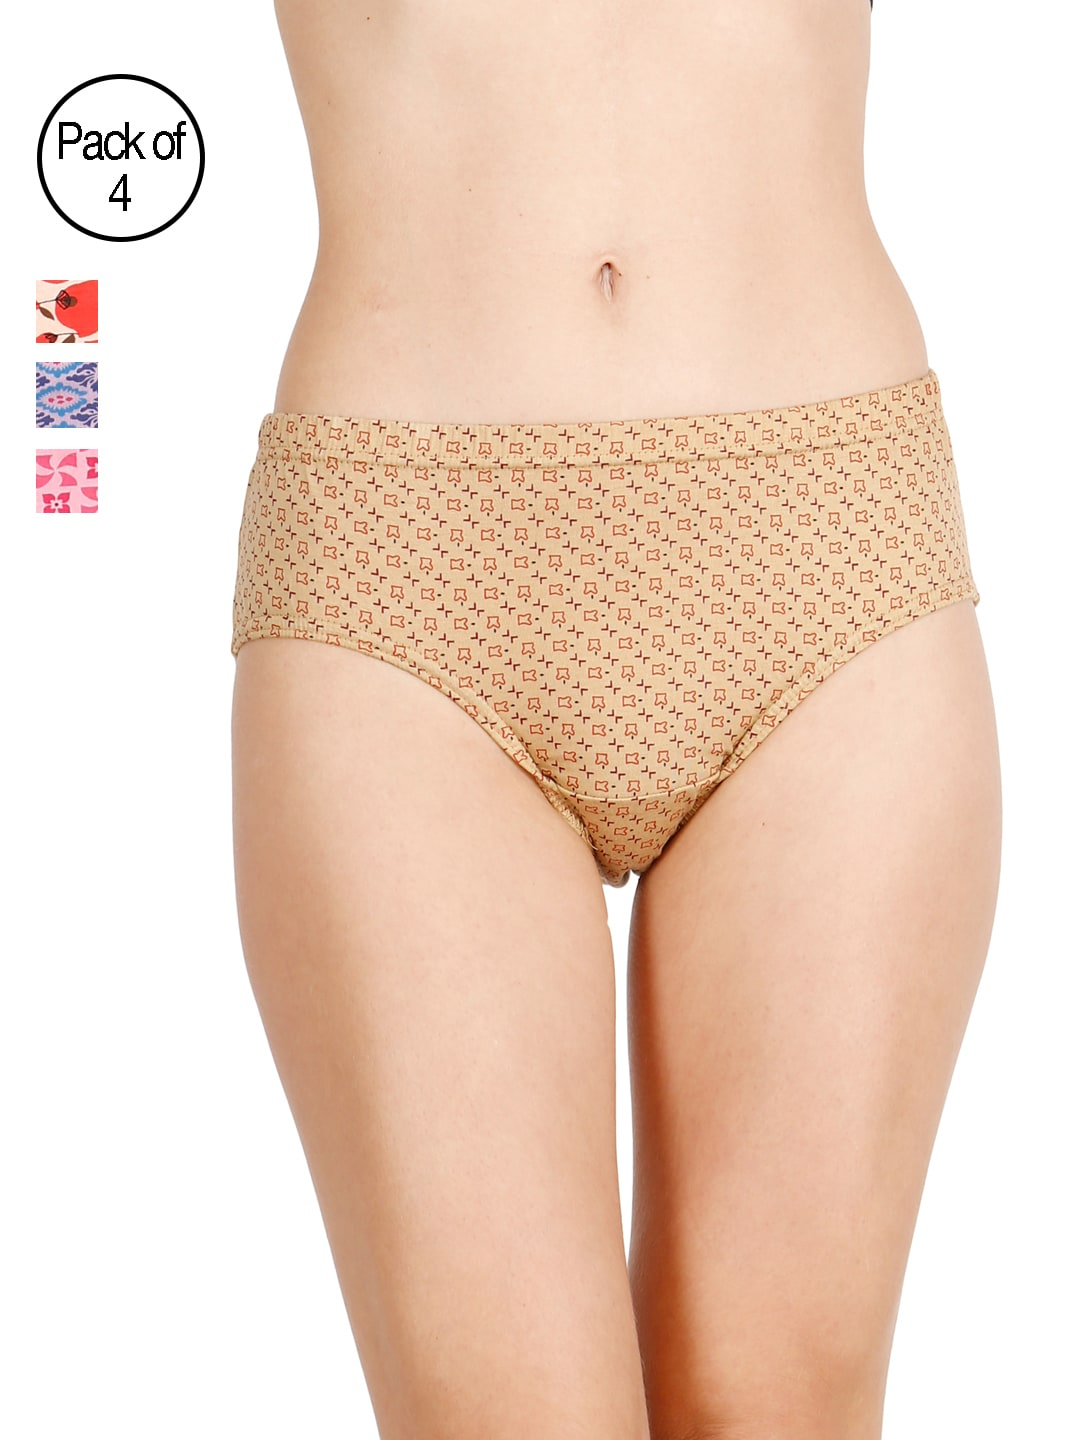 LUX Cozi for her  Pack Of 4 Briefs LC4H-HIP102-ABCD image